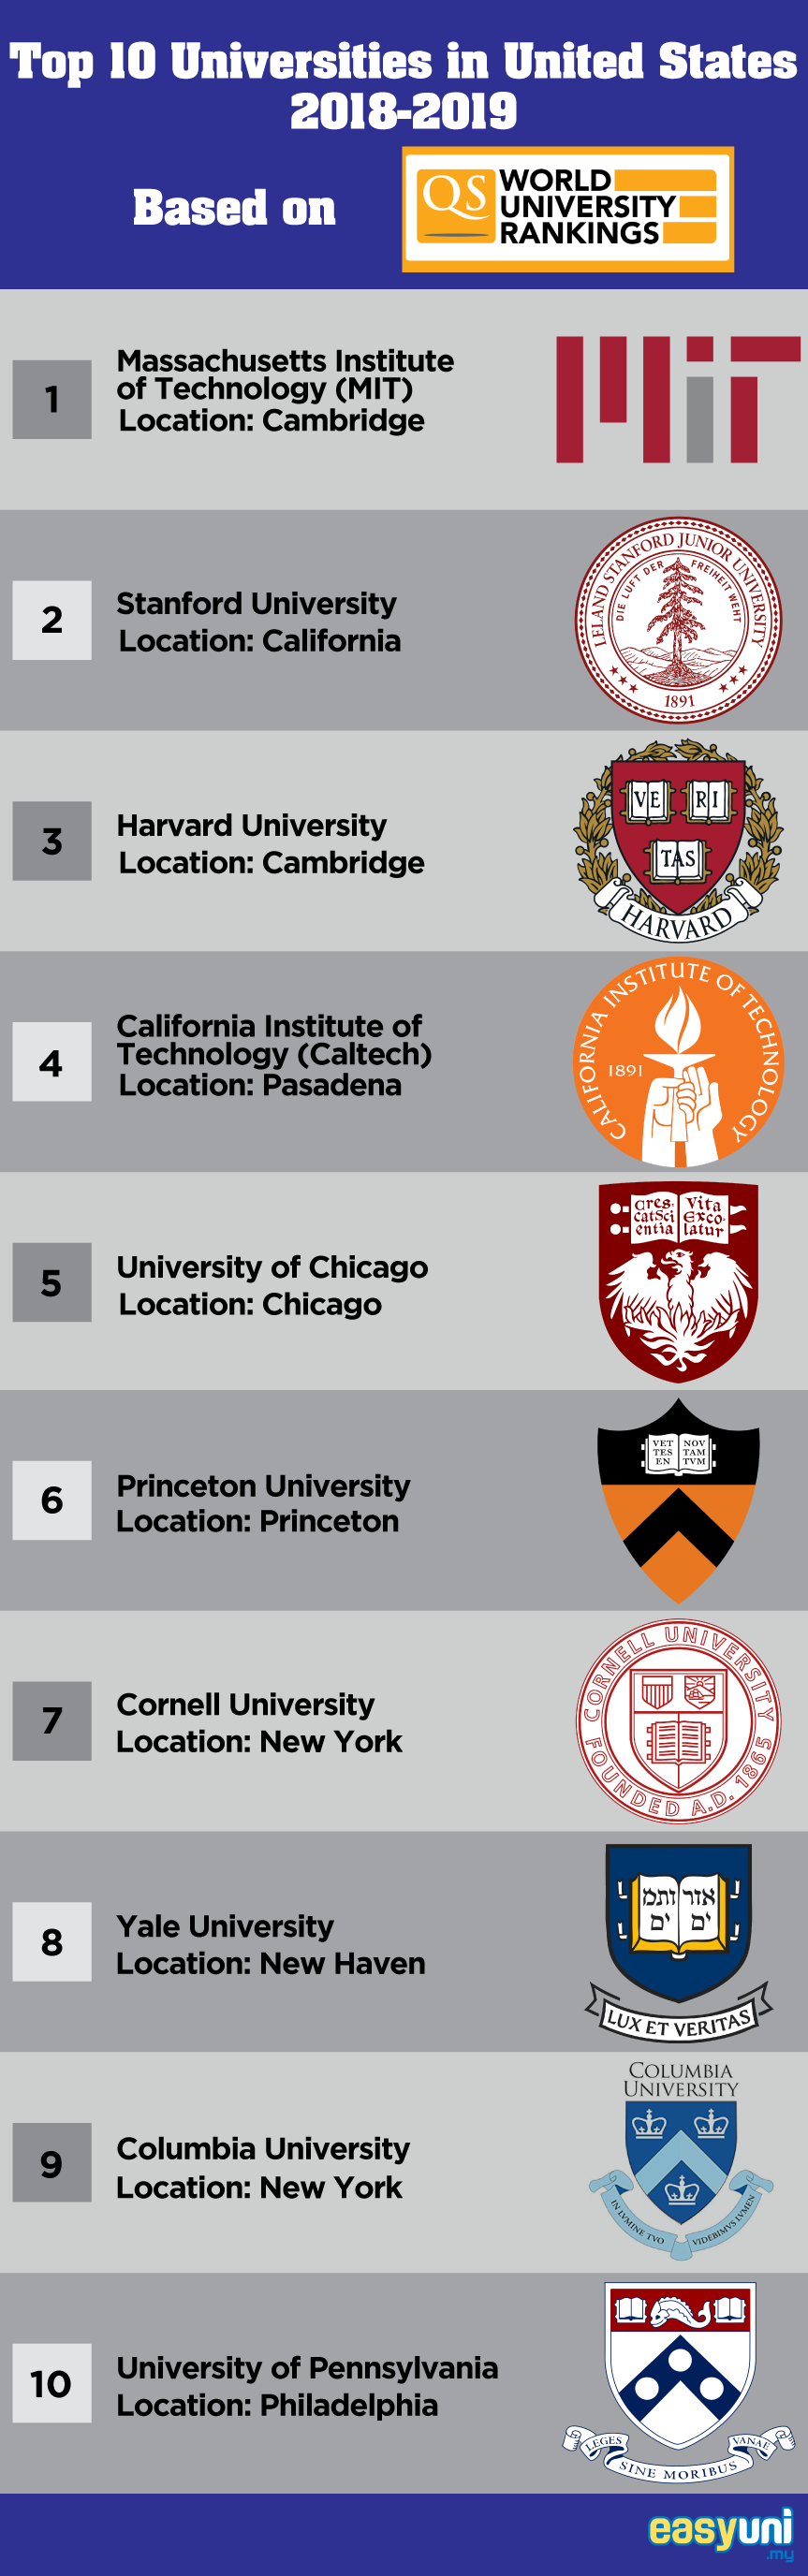 Top 10 Universities in USA 2019